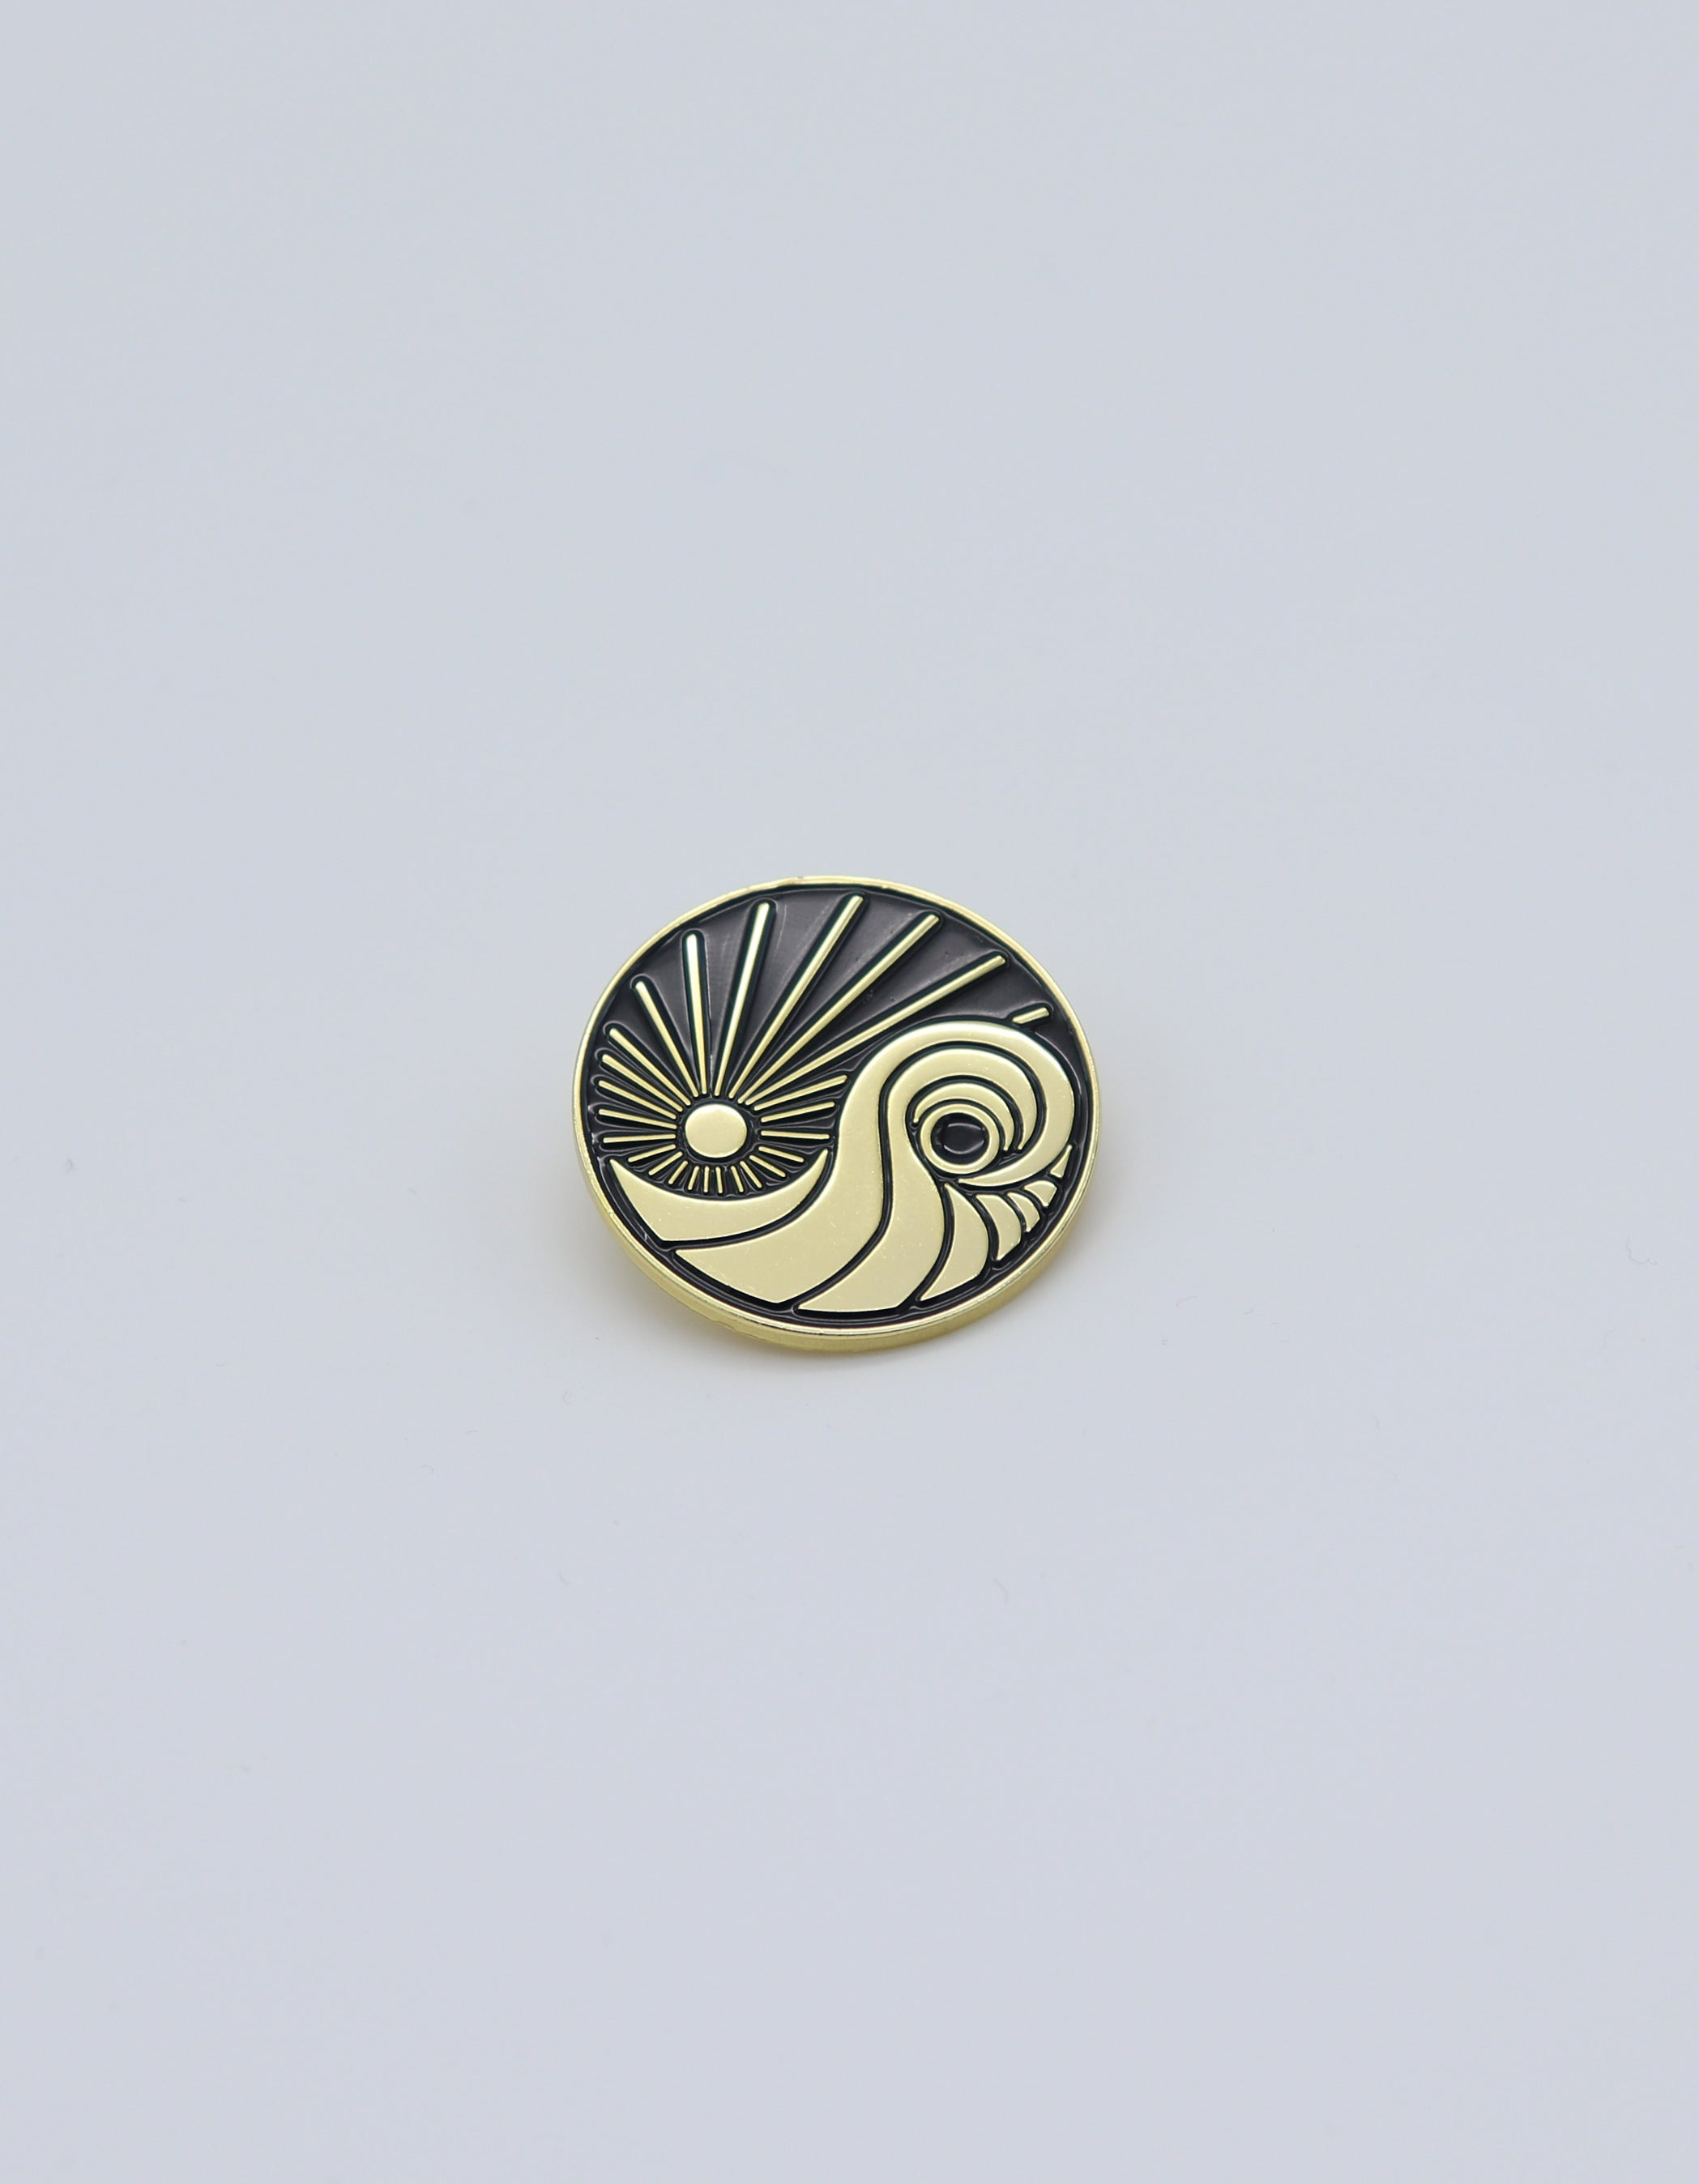 Gold colored circle pin featuring SD Trading Co's Logo against a black background. Sun and waves cool exclusive pin for your business blazer, t-shirt, backpack.